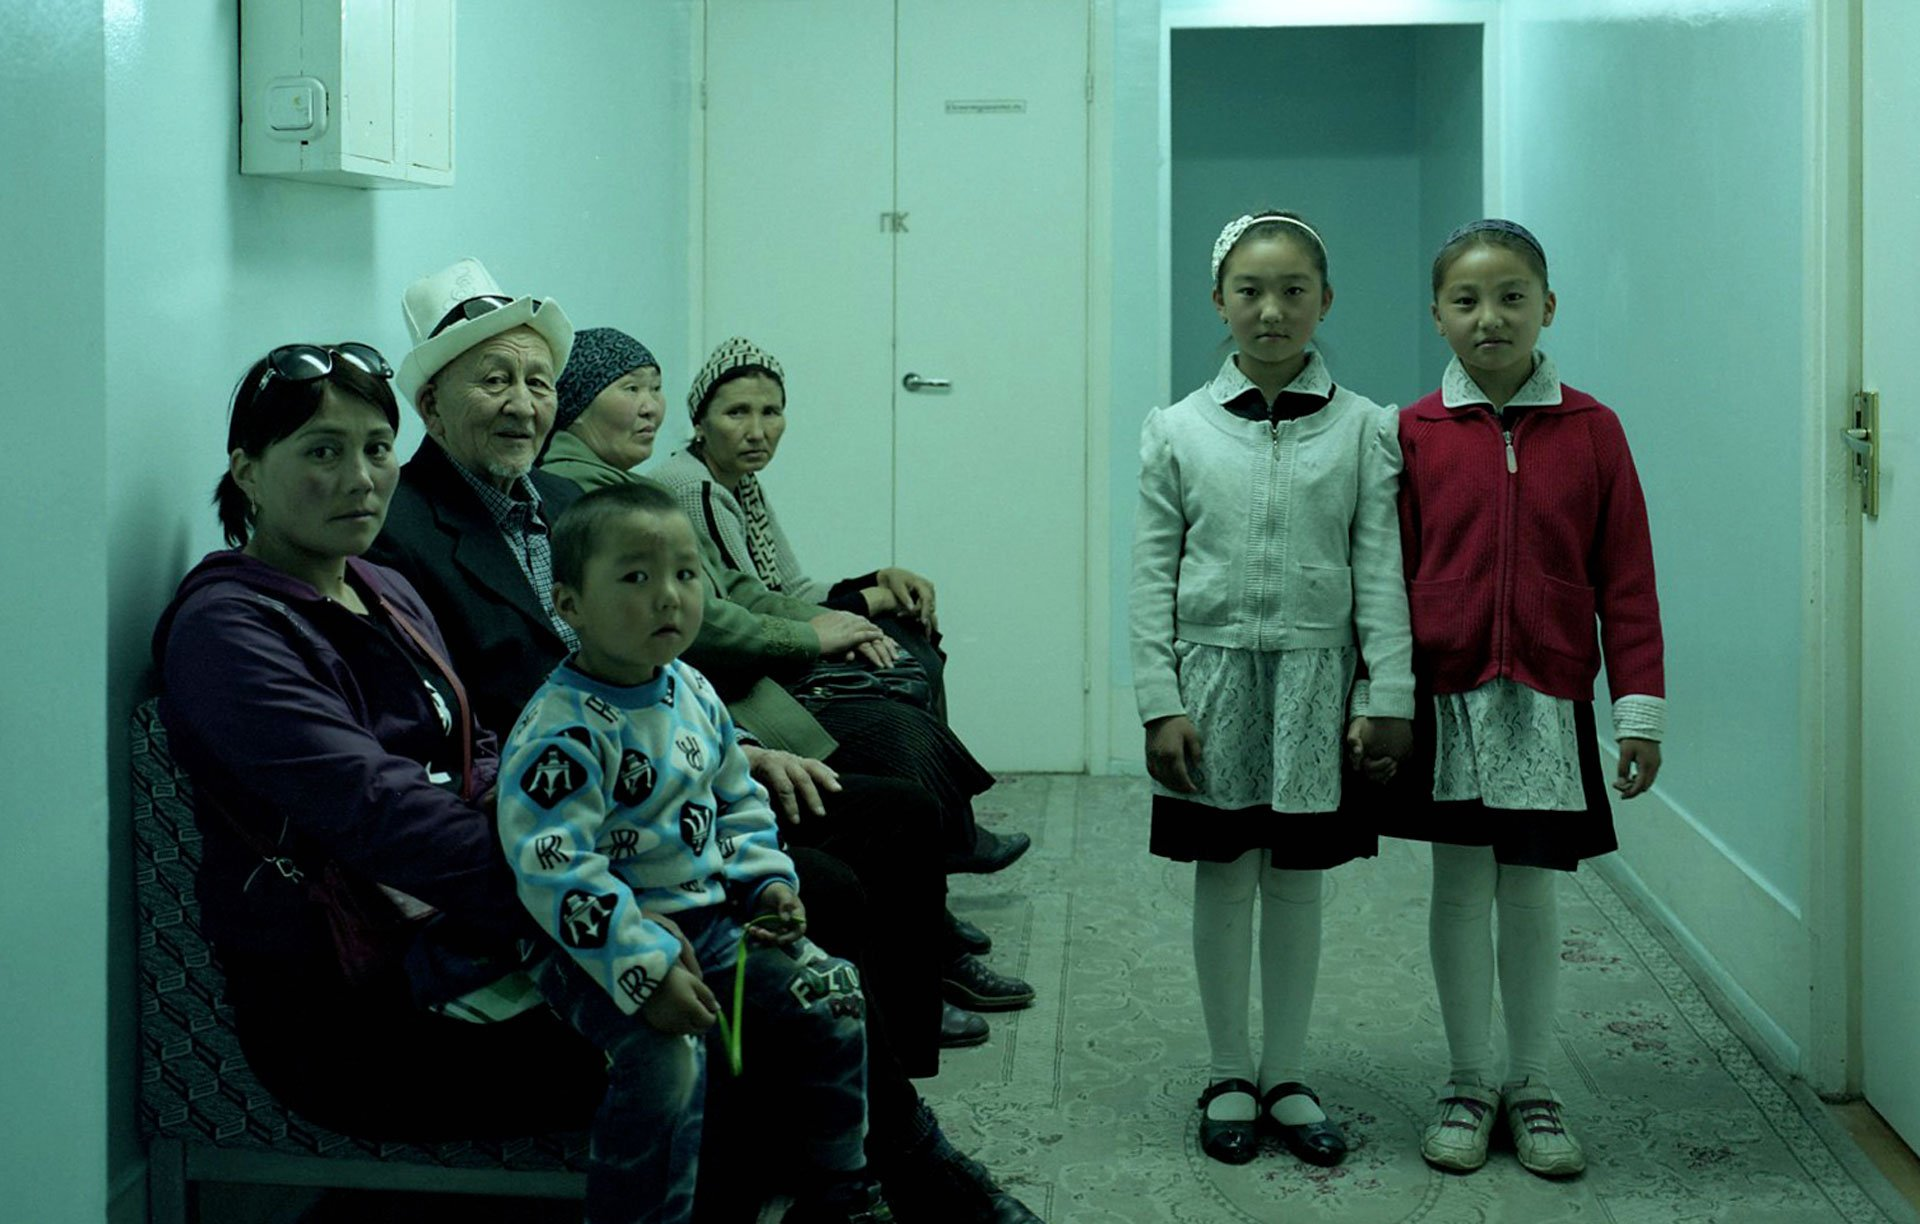 This eerie scene from a Kyrgyz sanatorium conjures the disquiet of The Shining